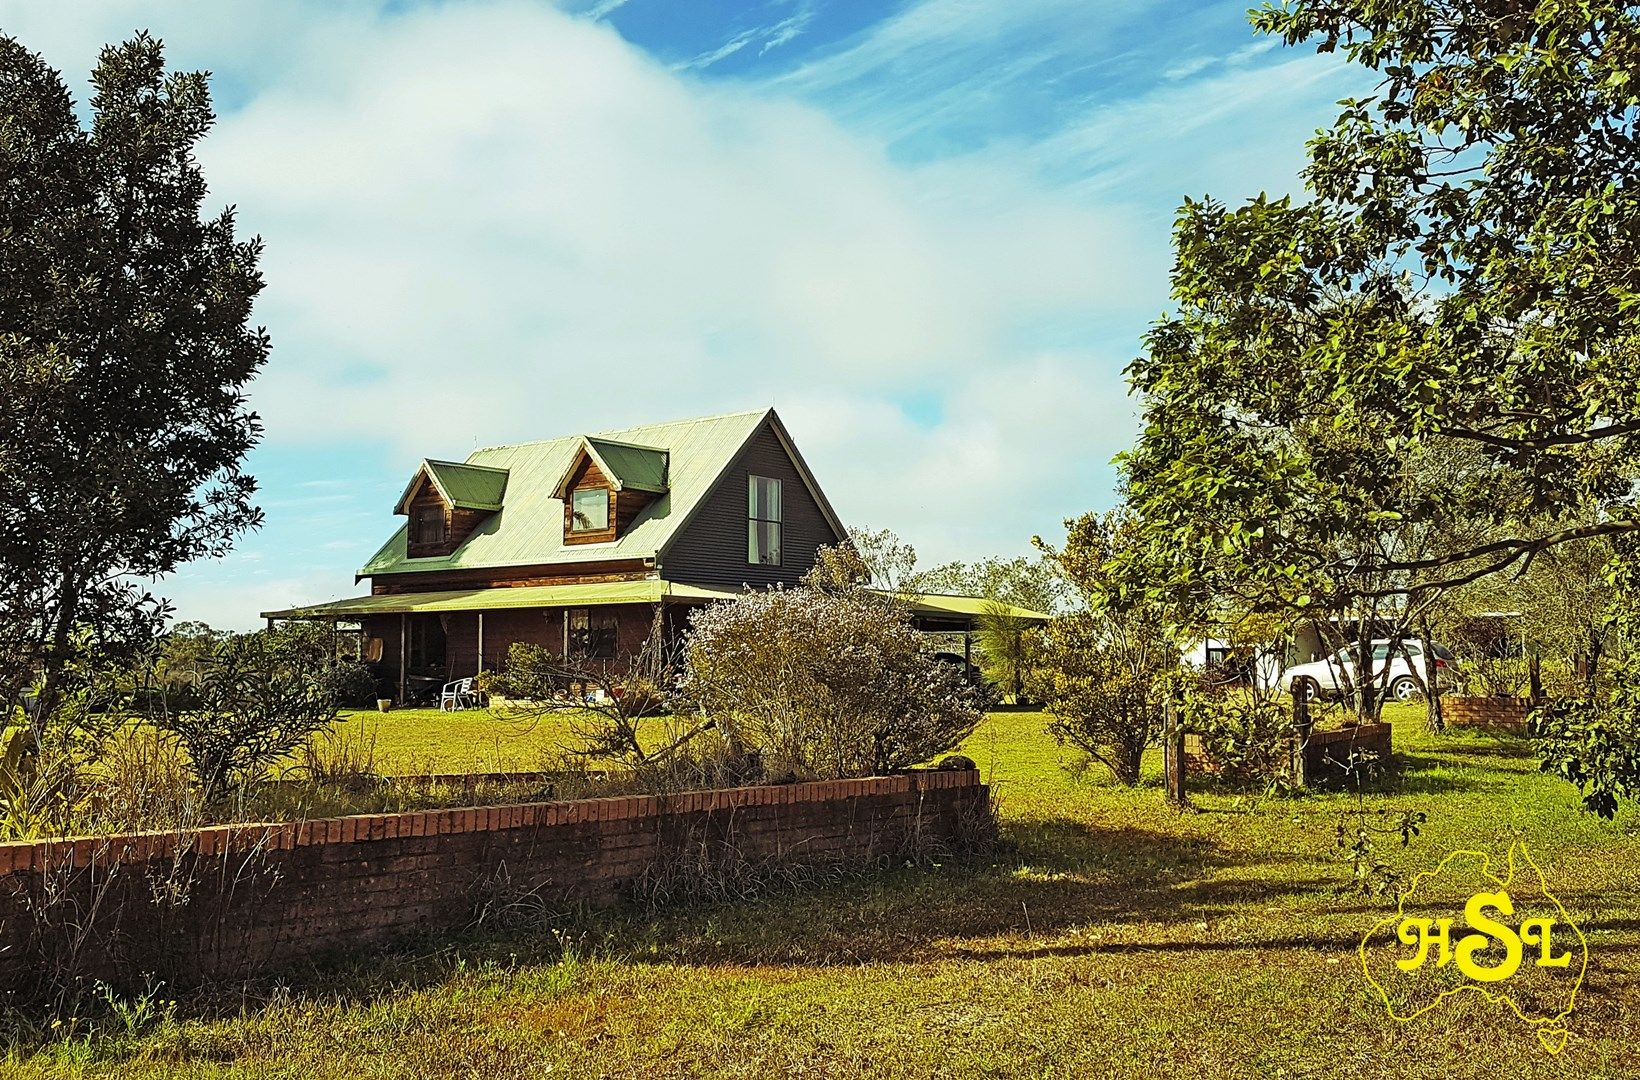 675 Warraba Rd, The Branch NSW 2425, Image 0